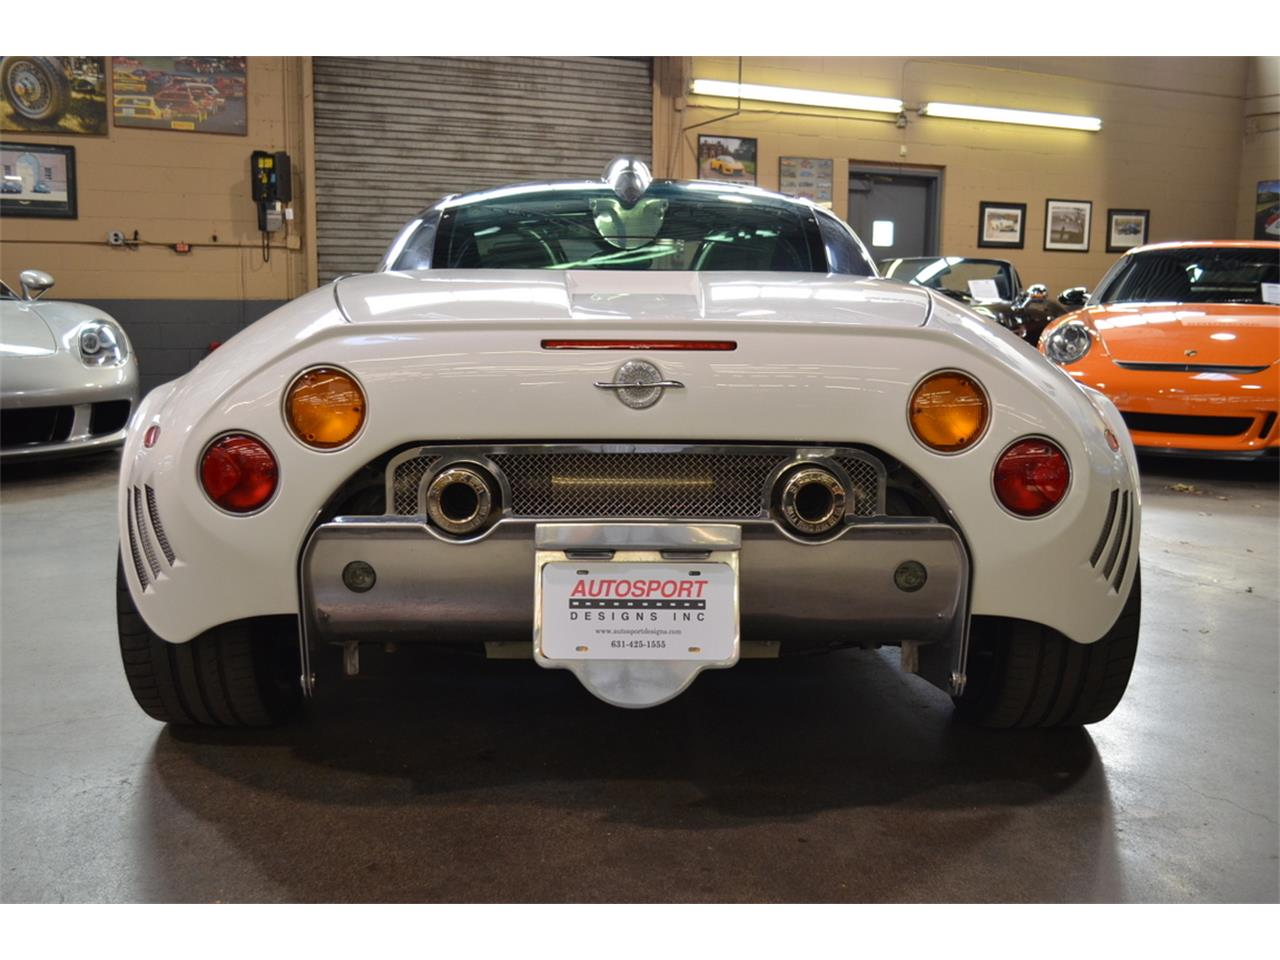 2010 Spyker C8 for sale in Huntington Station, NY – photo 7